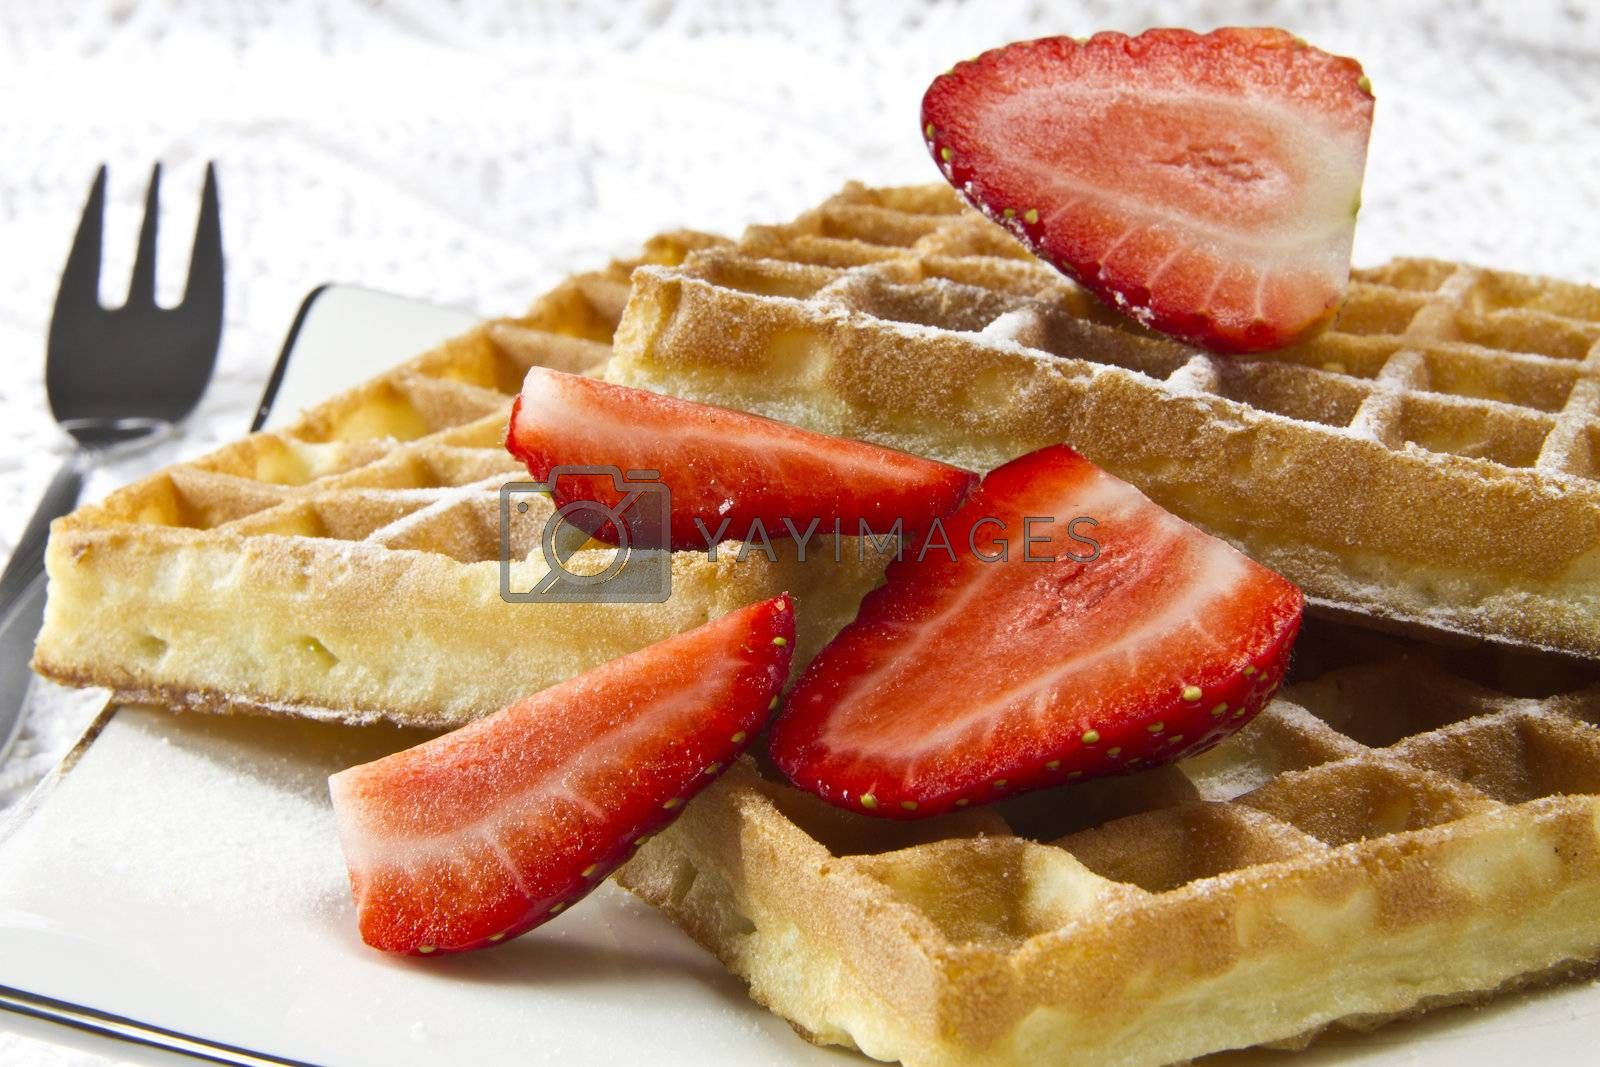 Freshly baked waffles with strawberries